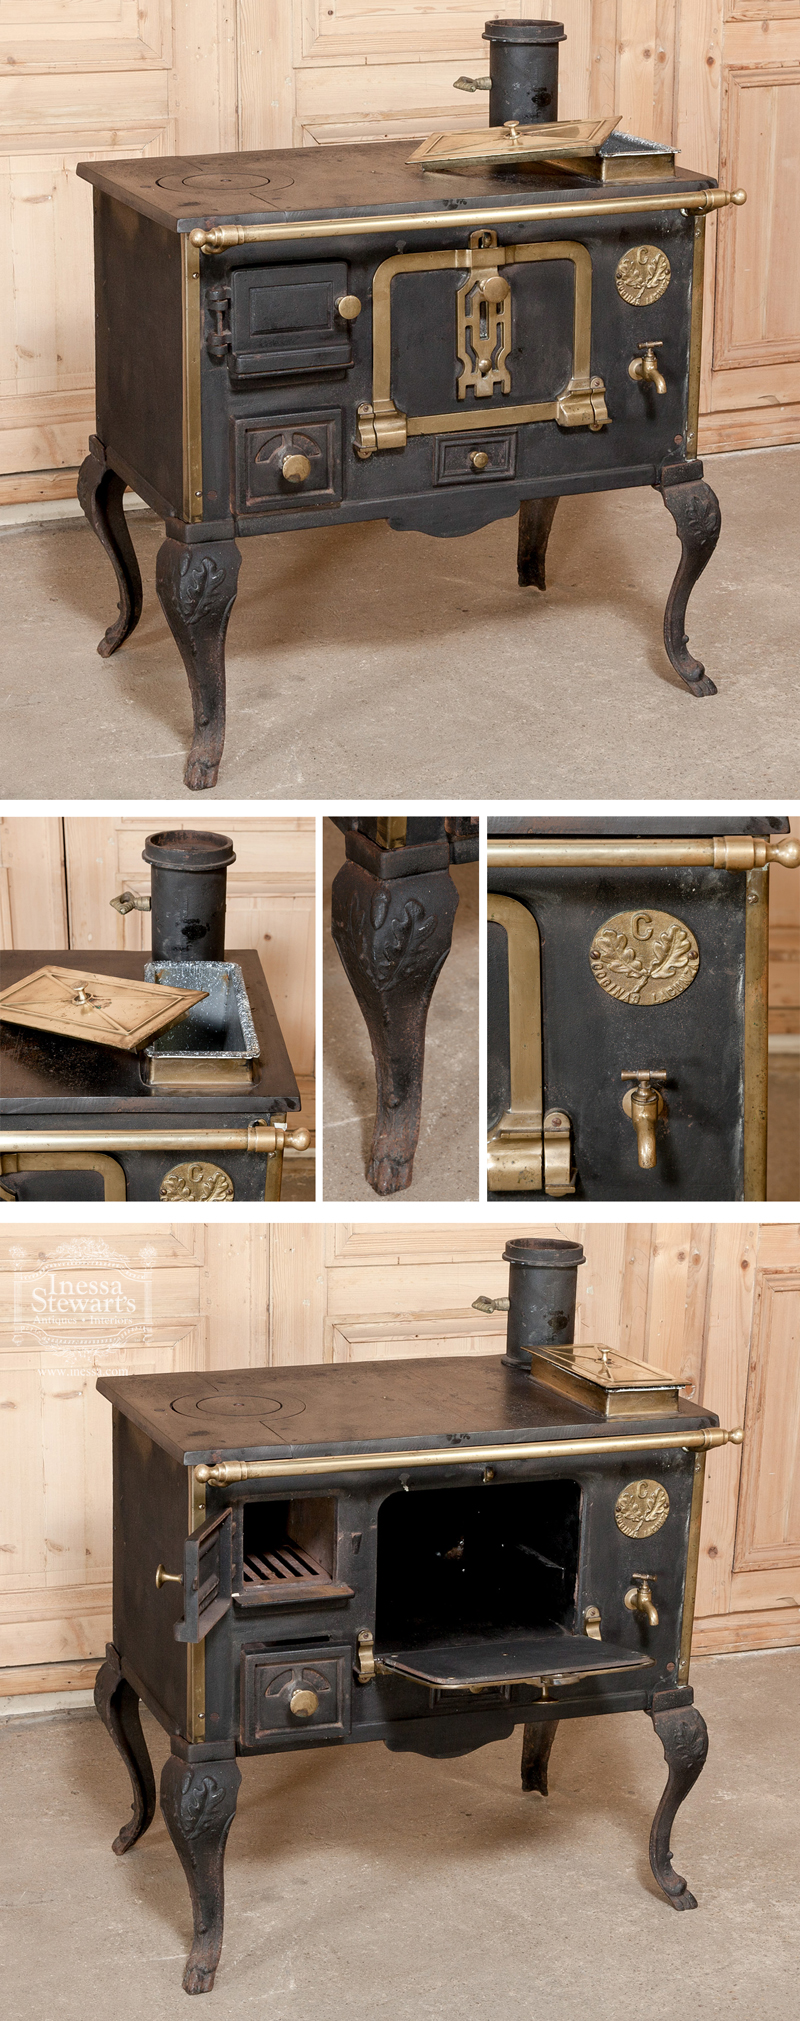 Antique Cast Iron Stove- Culinary Antiques